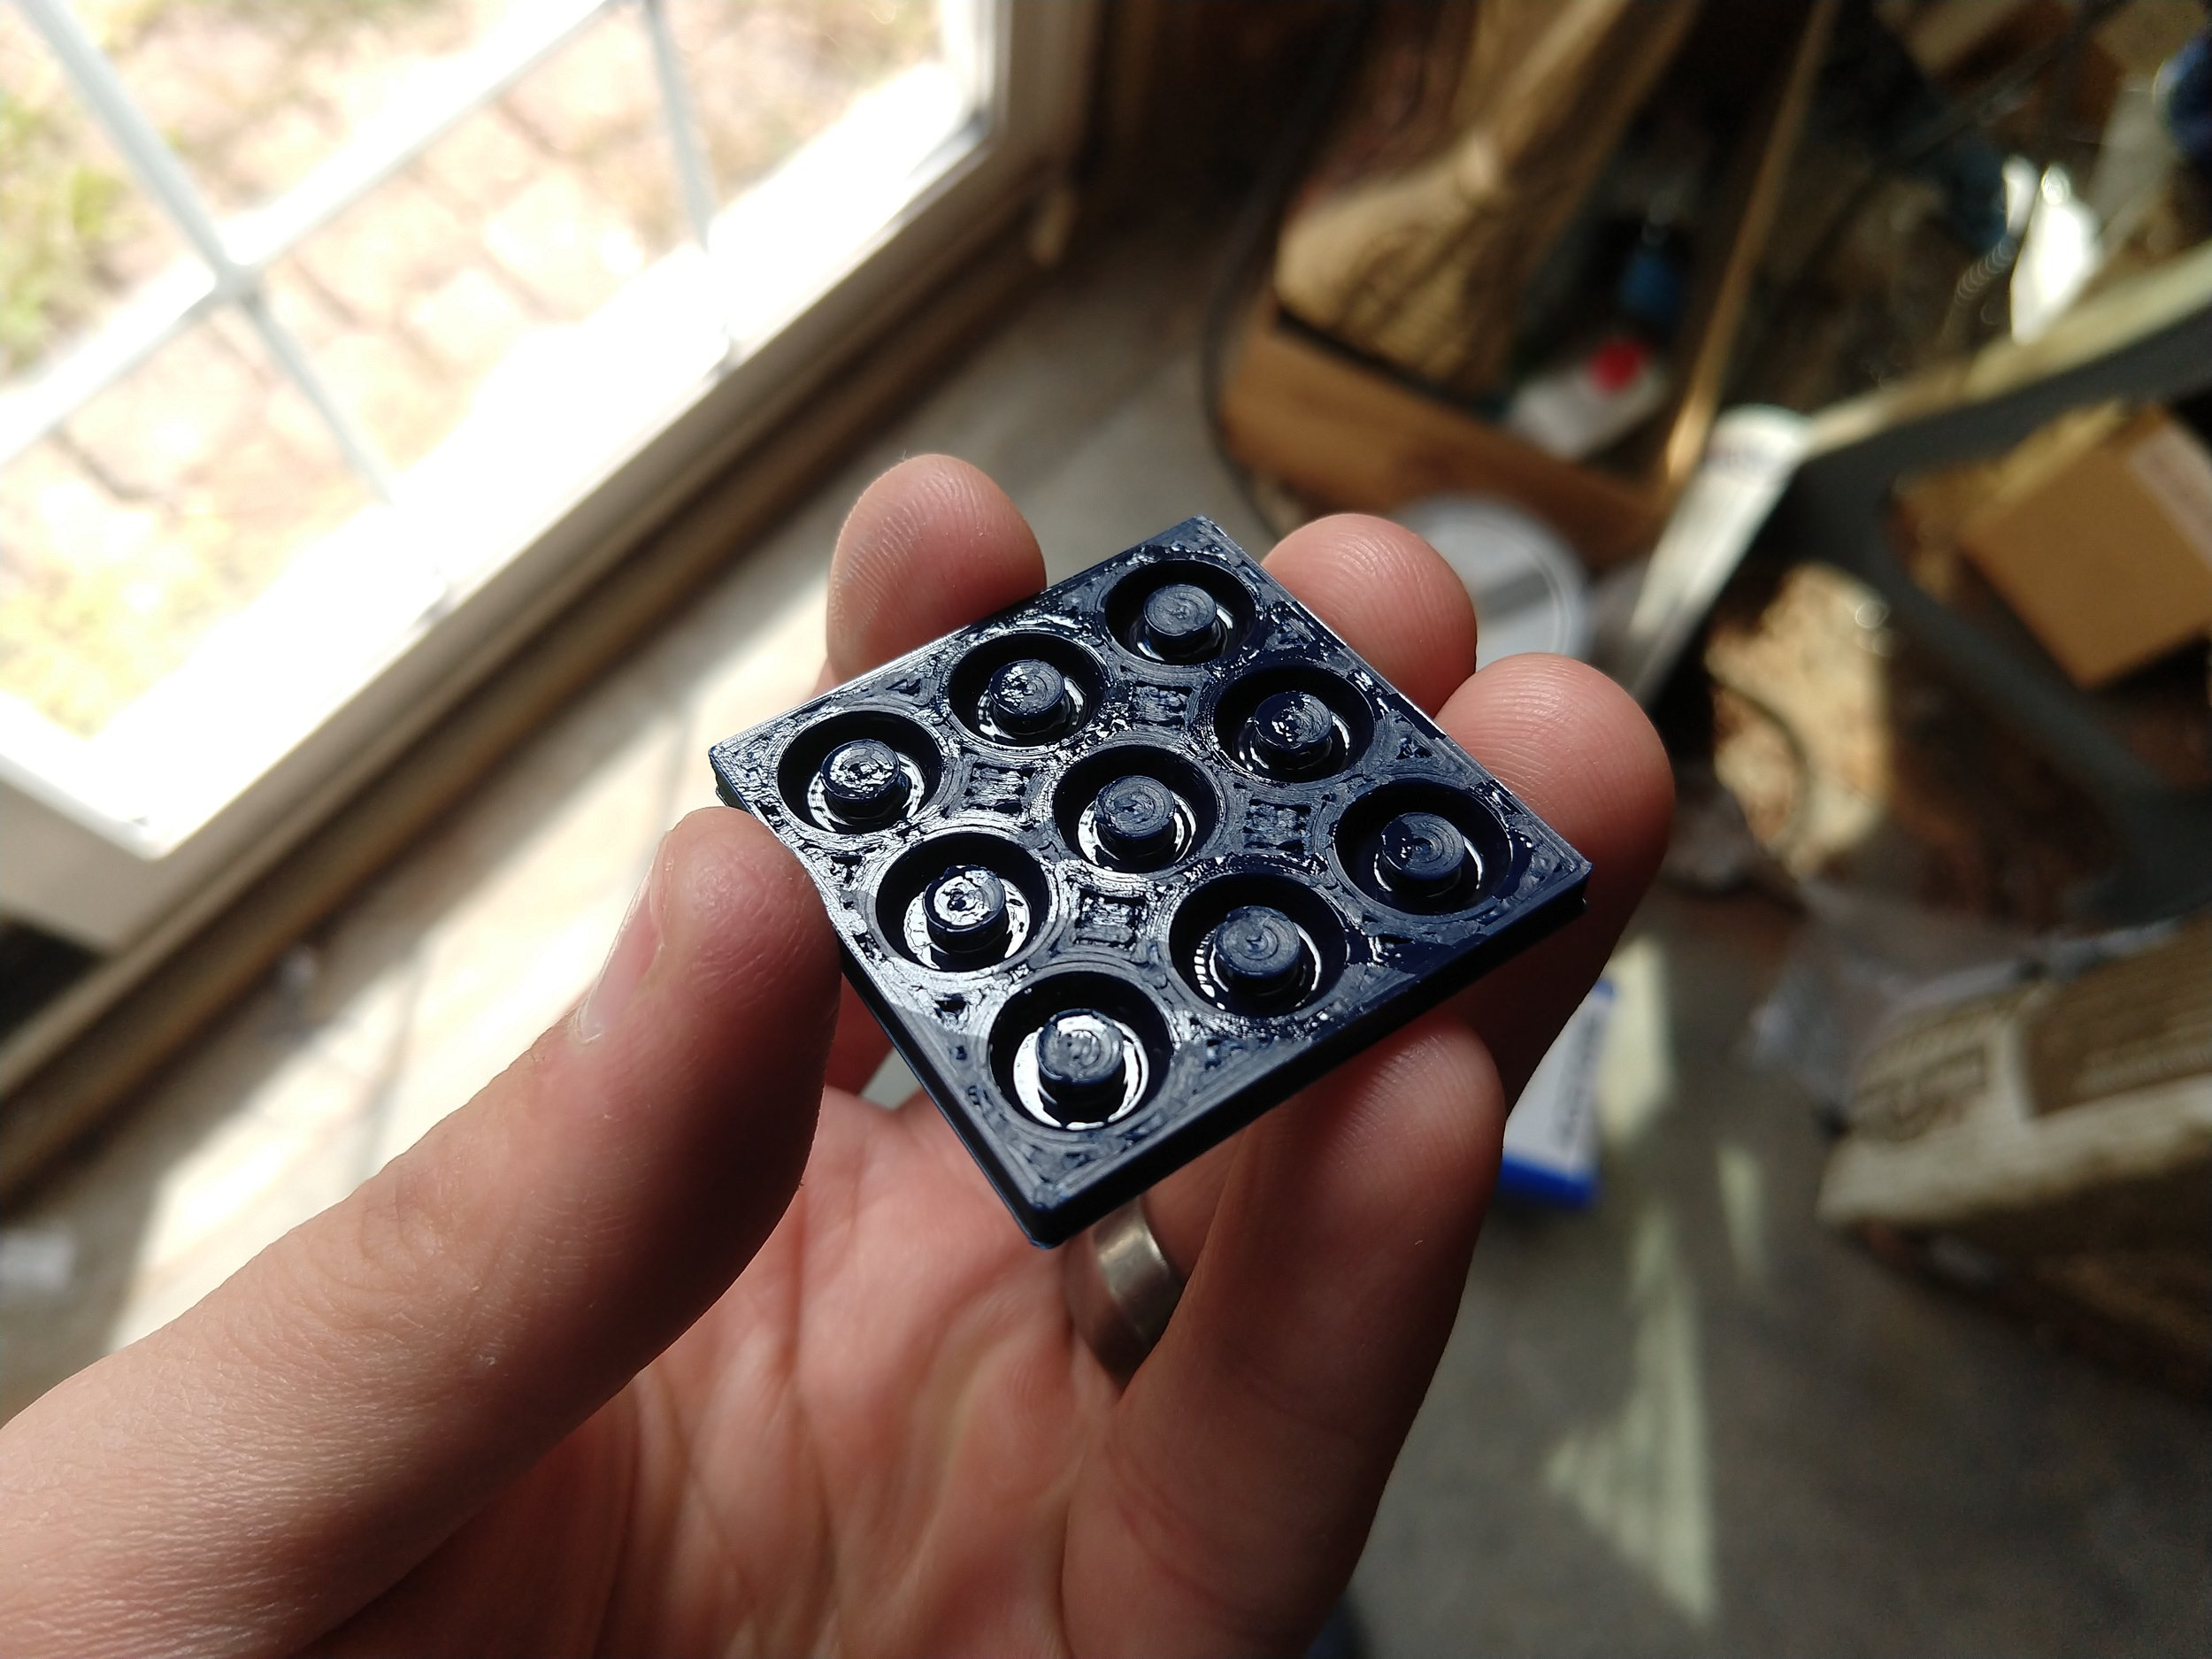 A 3D printed mould. There is no way this could possibly work…… could it?